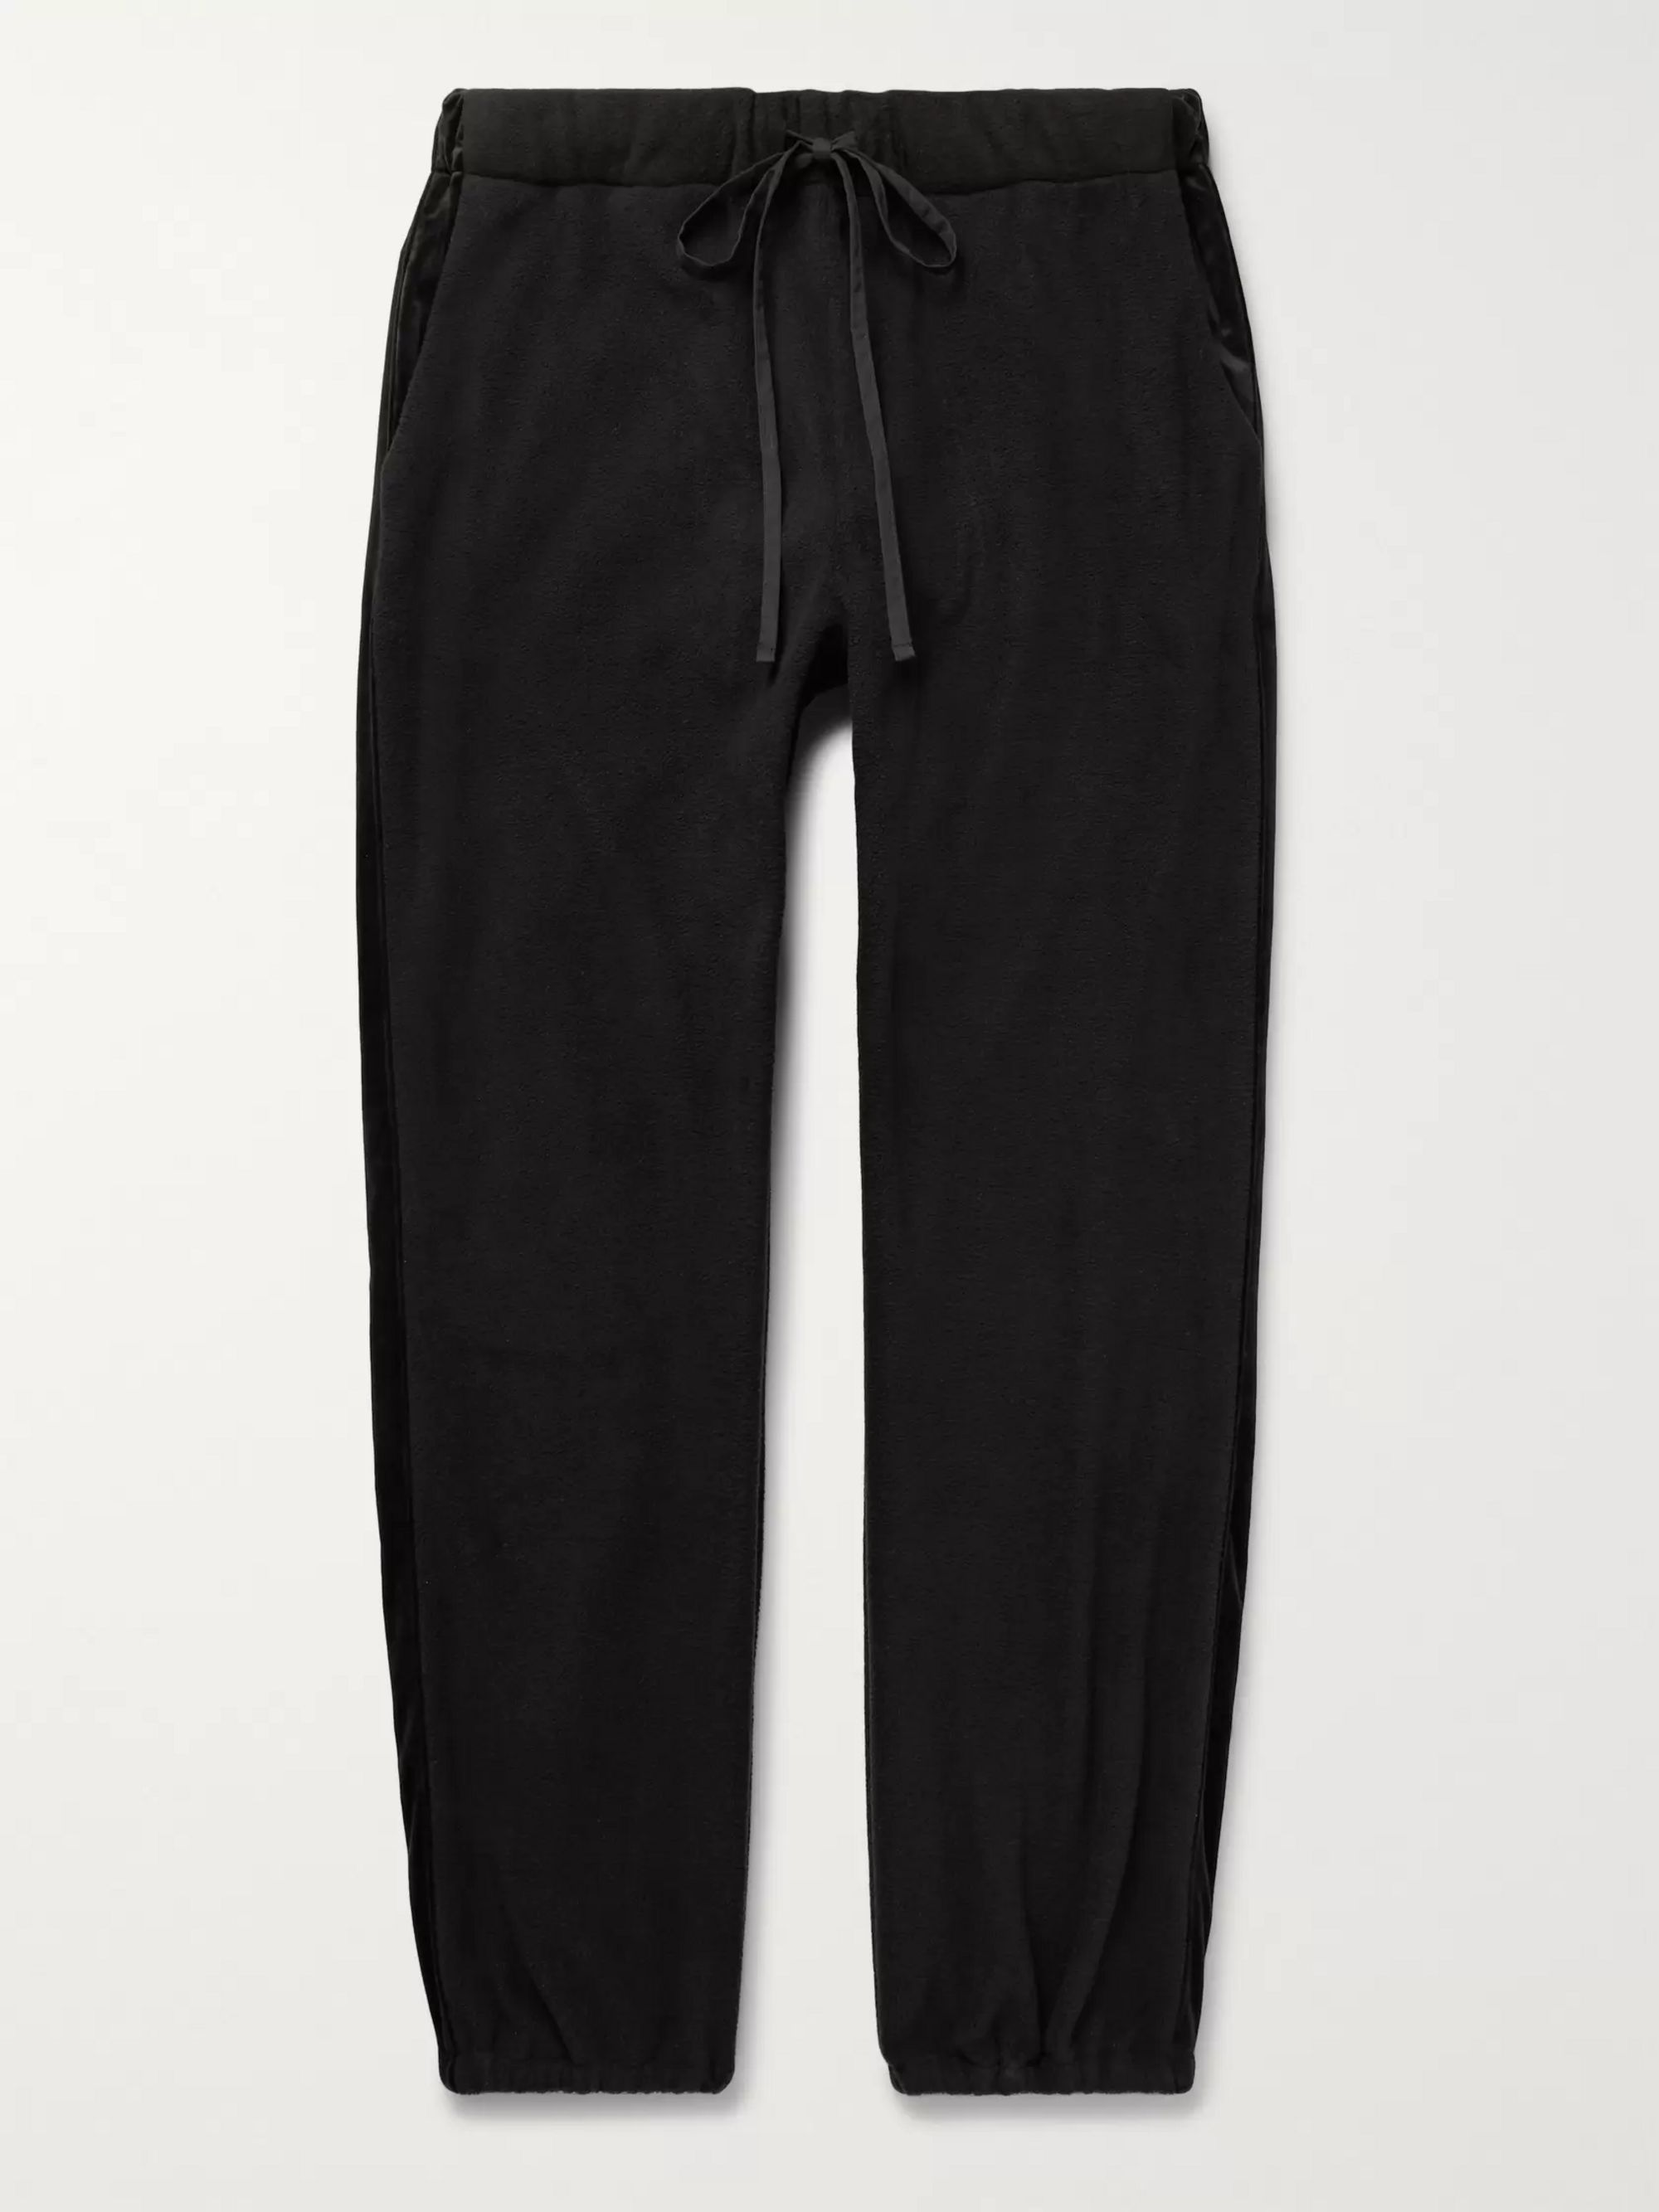 Monitaly Kog Risu Velvet-Trimmed Fleece Sweatpants